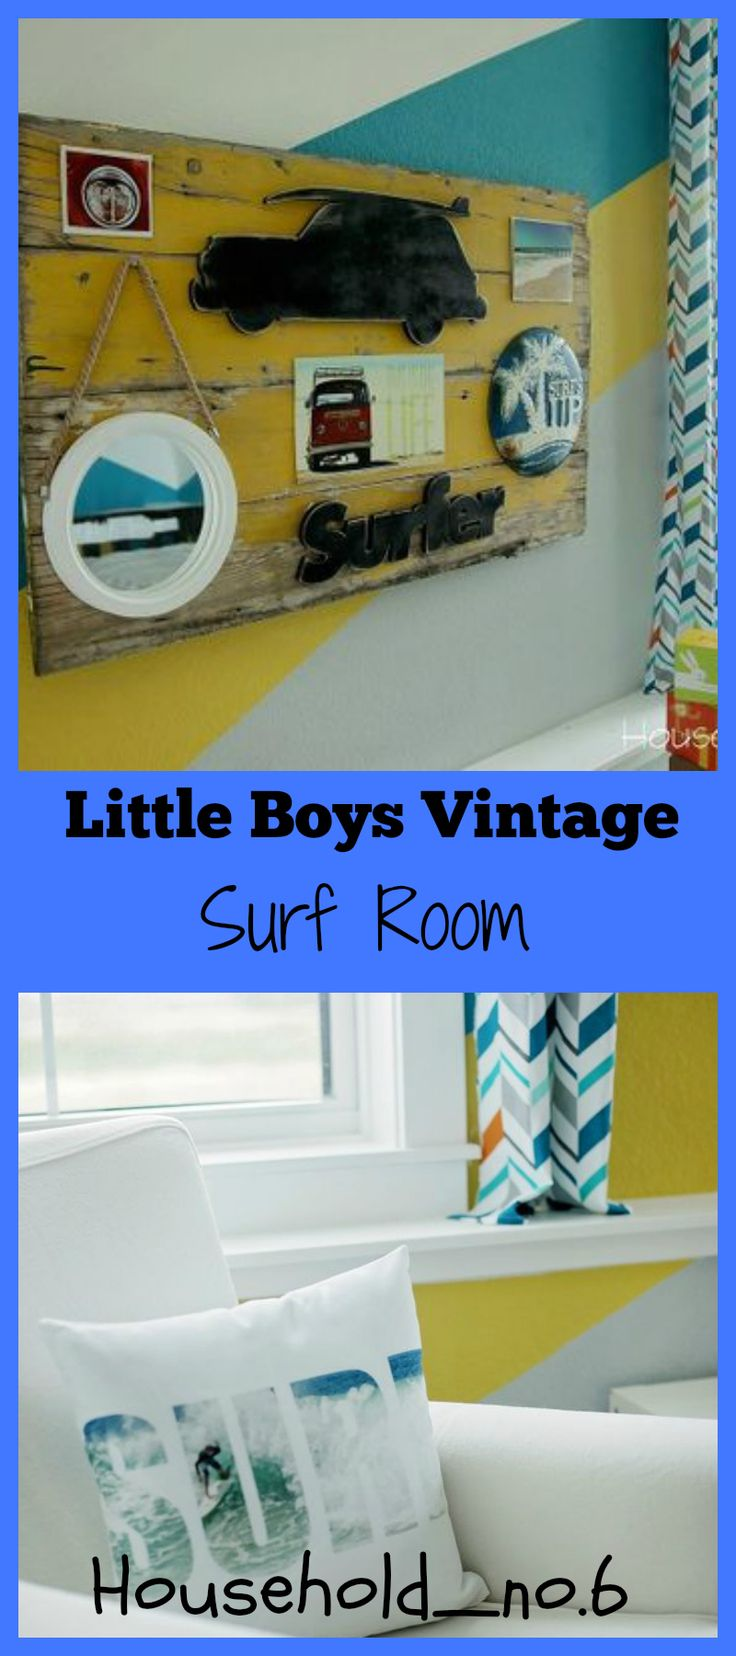 Little Boys Vintage Surf Room